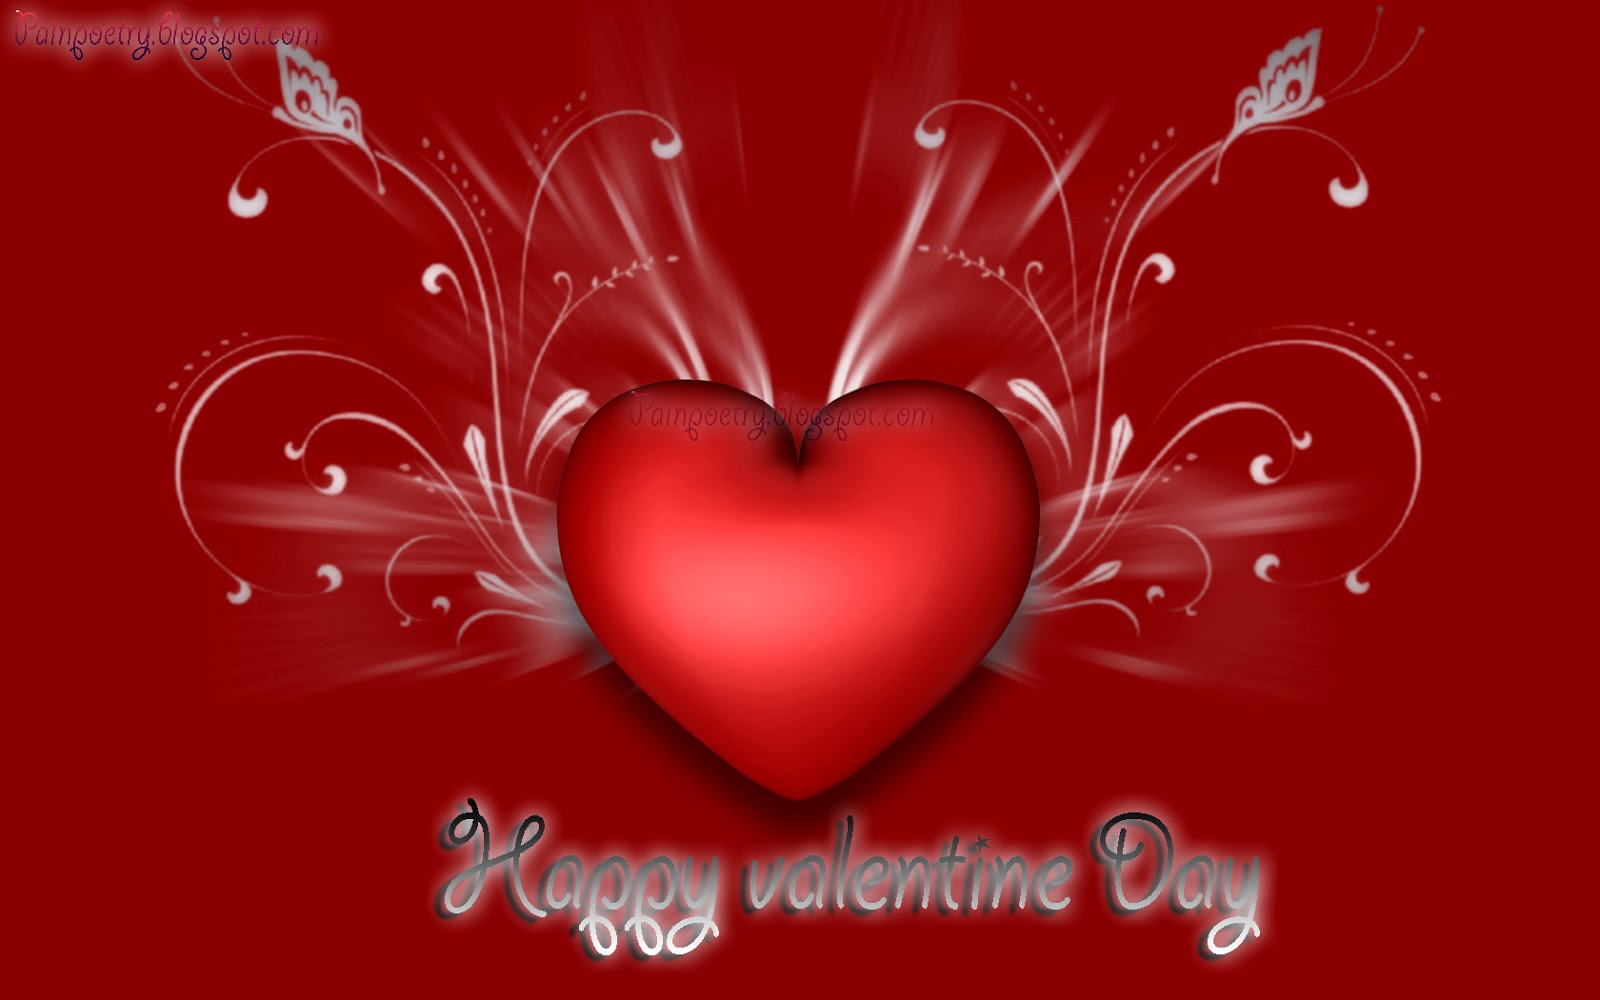 Happy-Valentines-Day-Special-Heart-Image-HD